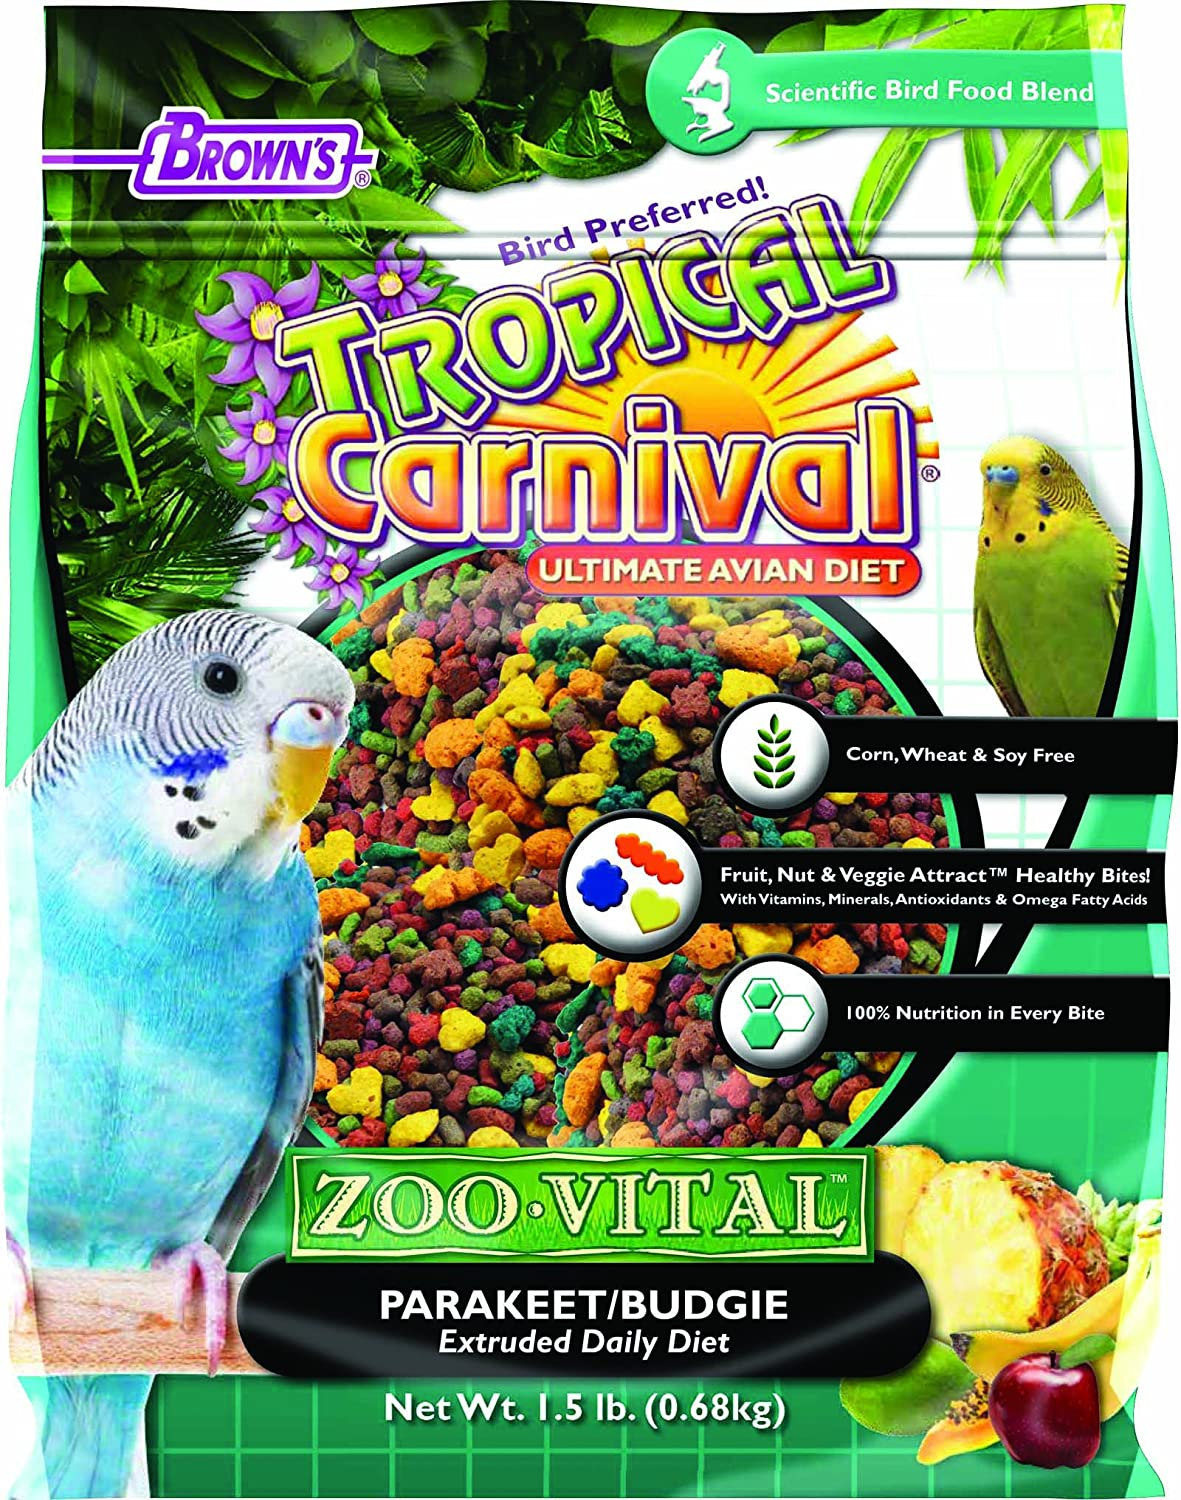 F.M.Brown's Tropical Carnival Zoovital Parakeet Budgie Extruded Daily Diet, 1.5 lb